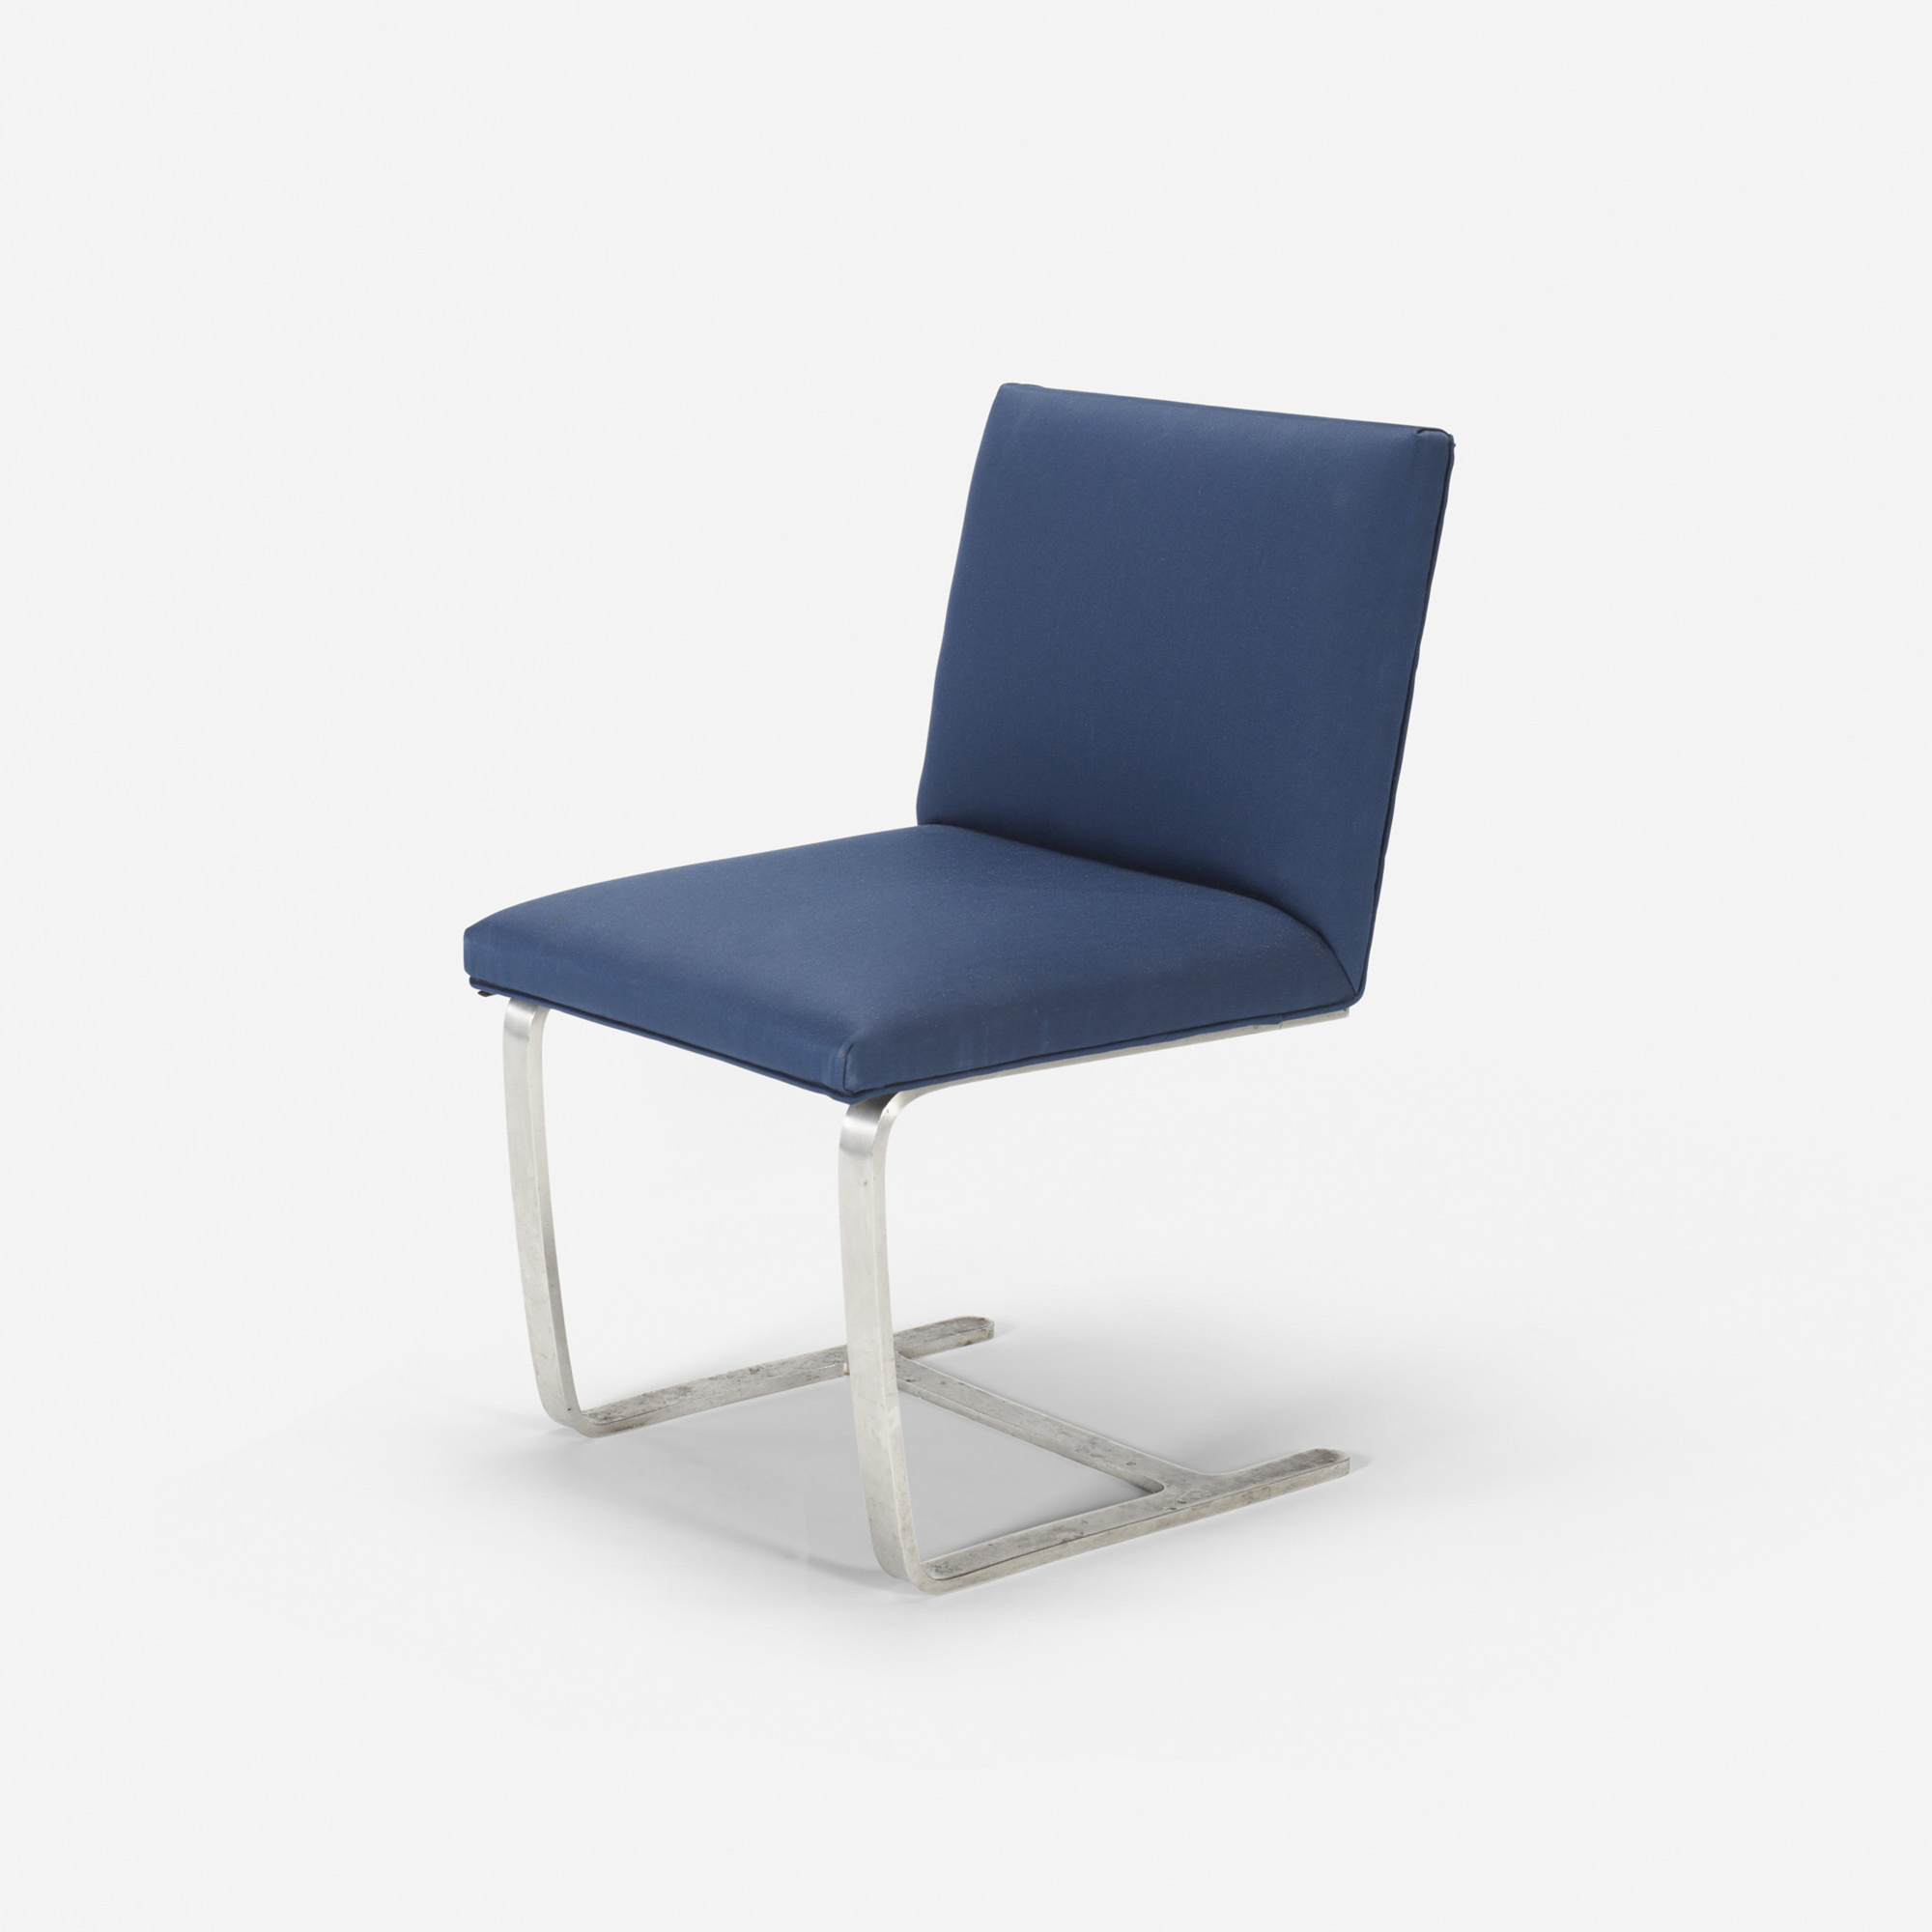 218: Ludwig Mies van der Rohe / Custom Brno side chair from The Four Seasons (1 of 1)